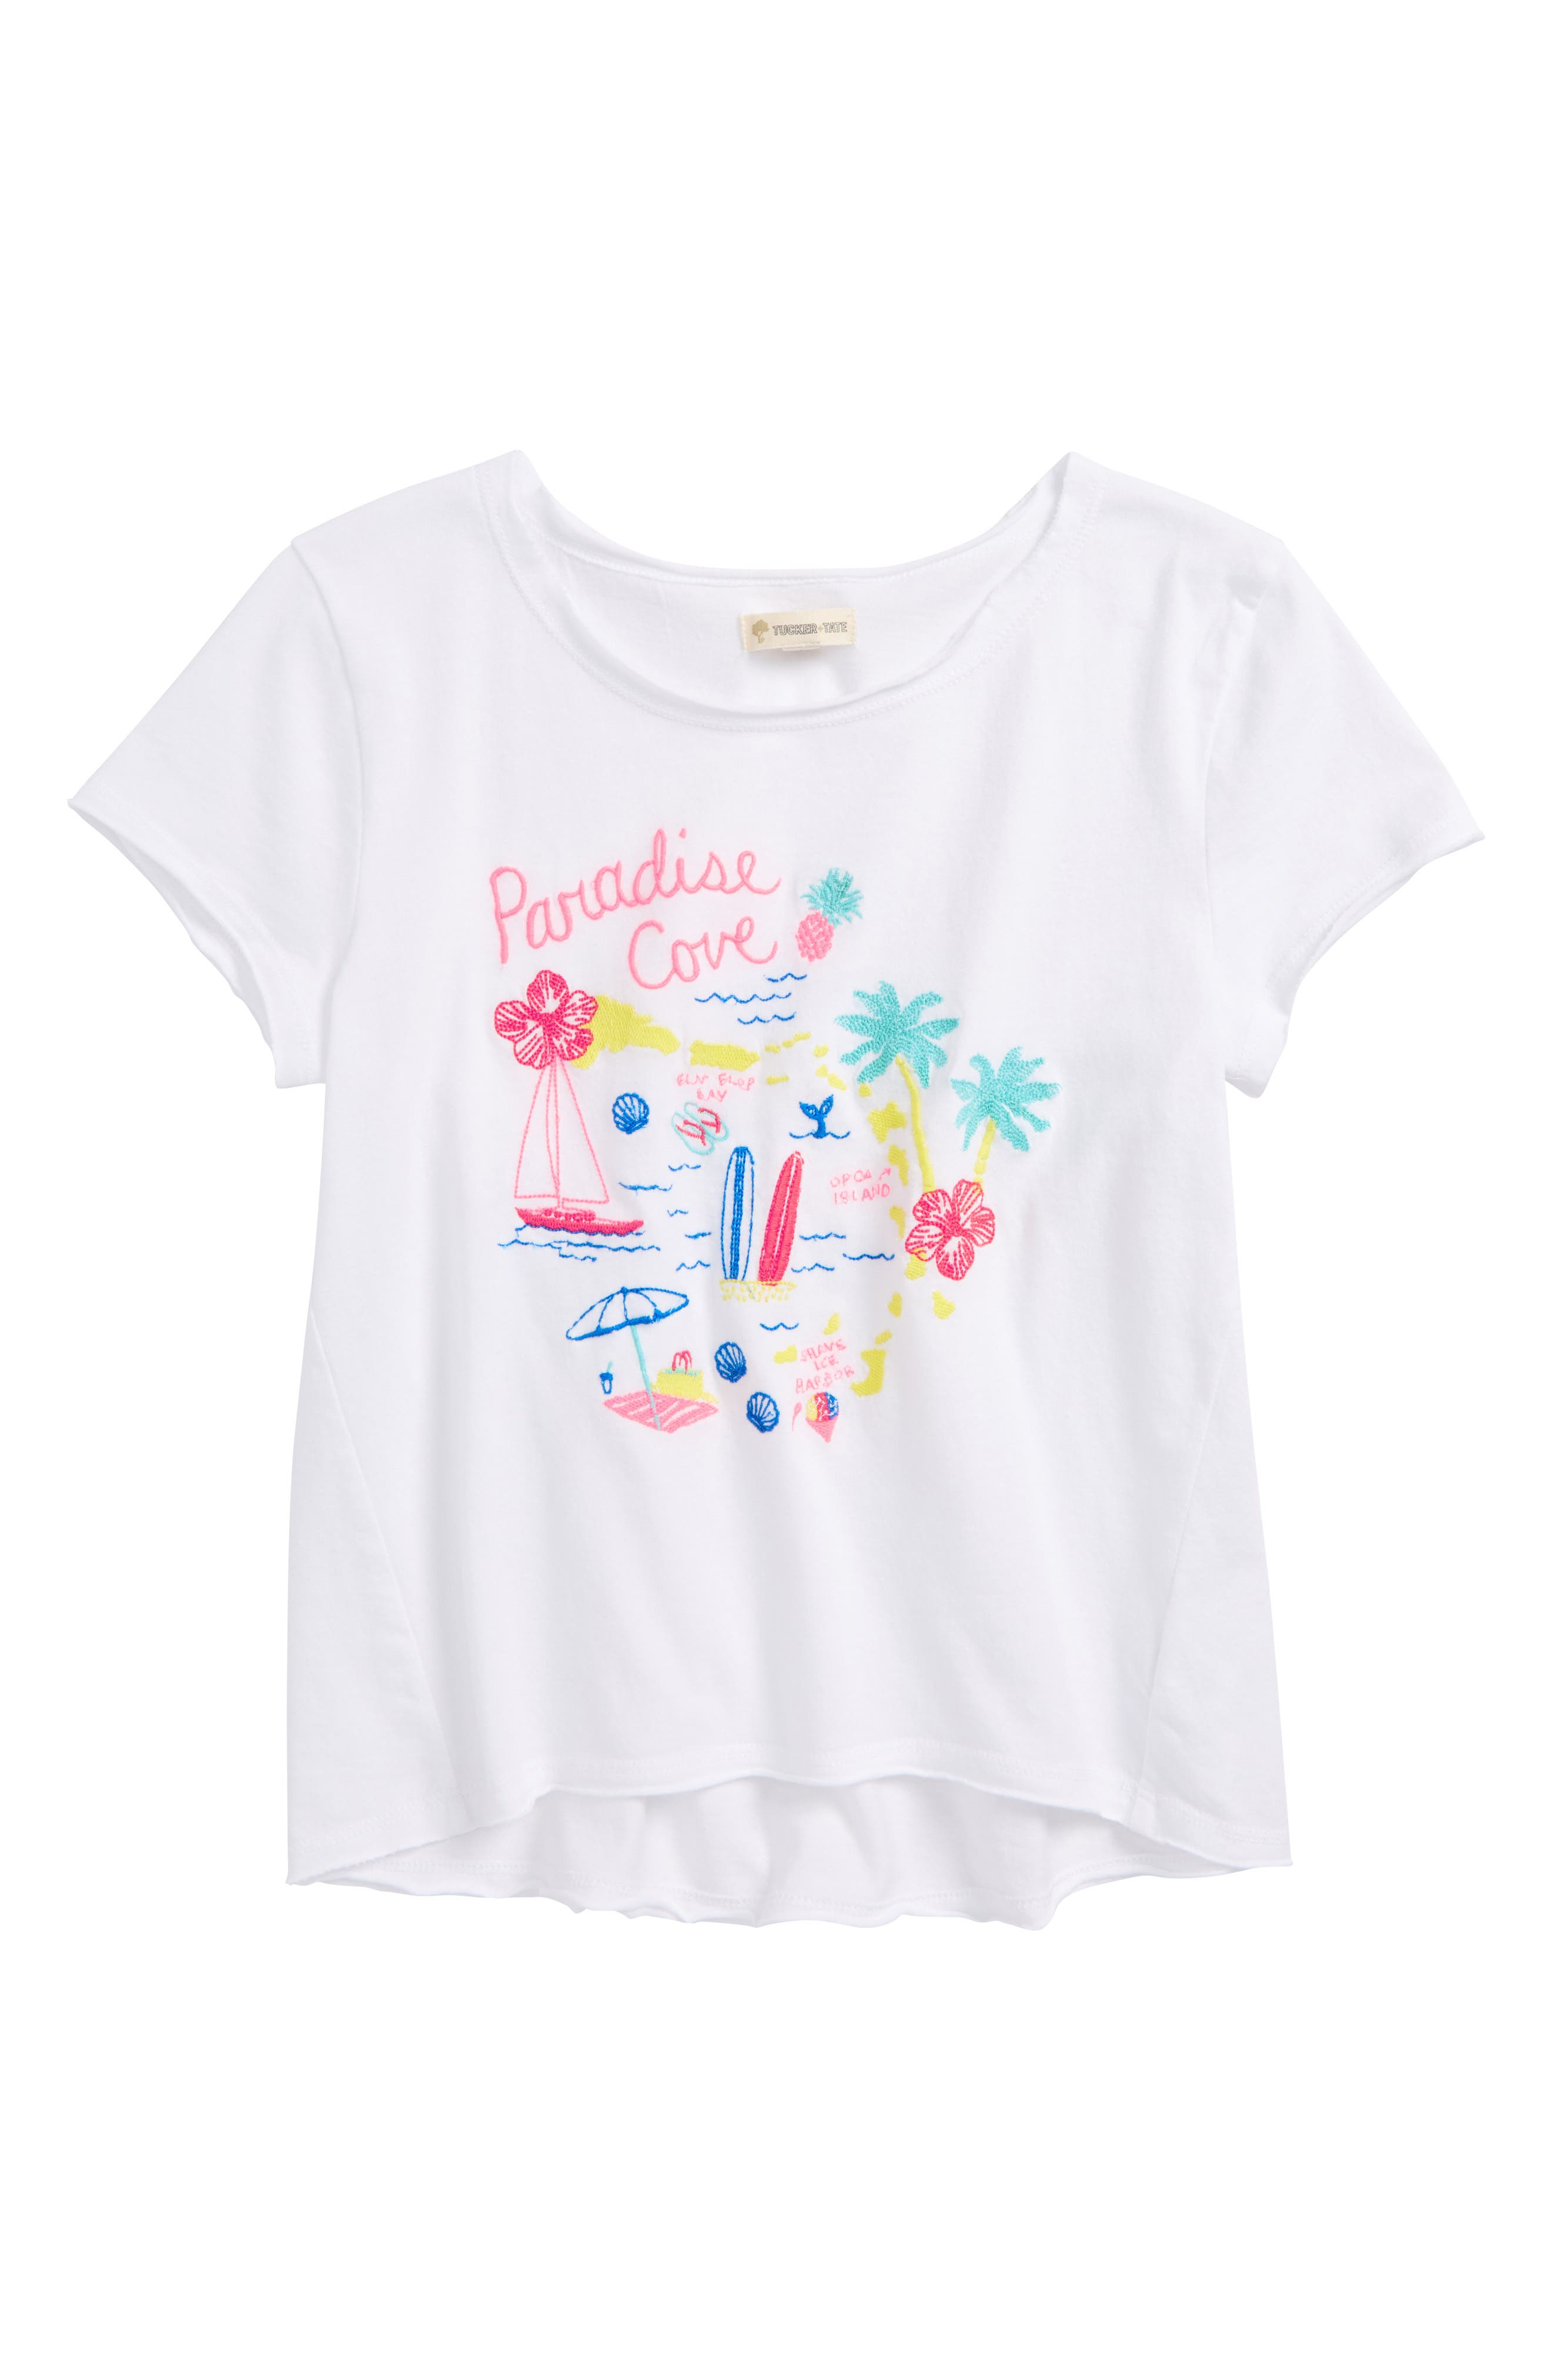 Tucker+Tate Embroidered Tee,                             Main thumbnail 1, color,                             White Destination